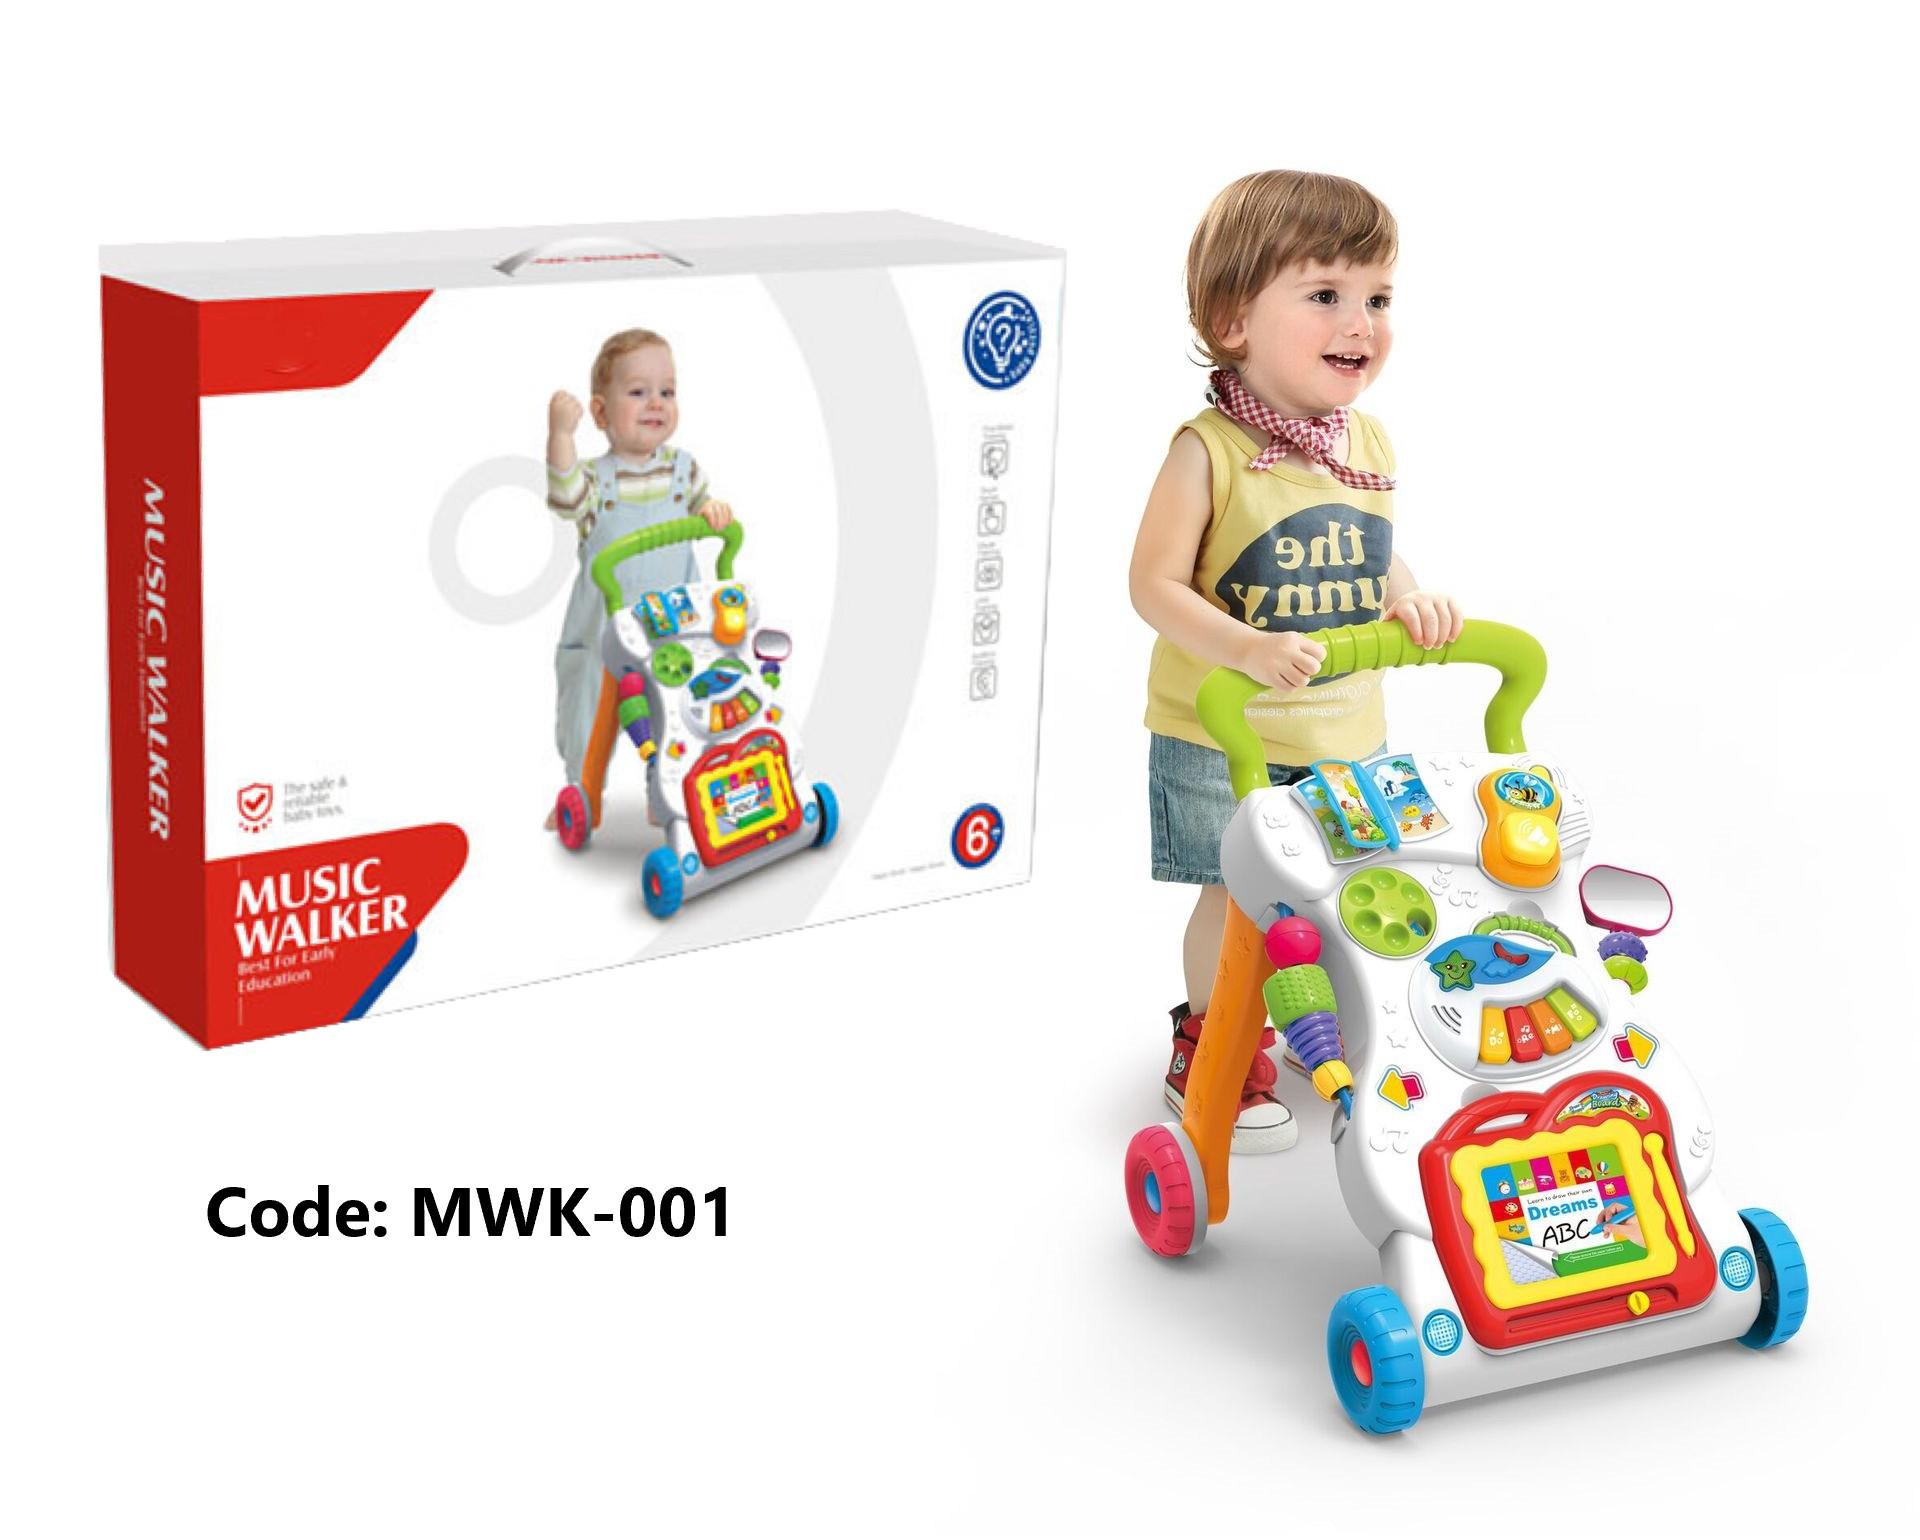 Activity & Gear Folding Baby Walker Music Game Table Multifunction 2in1 Push Early Childhood Boy First Walkers With Wheels Toy 0-1 Years Attractive Designs;